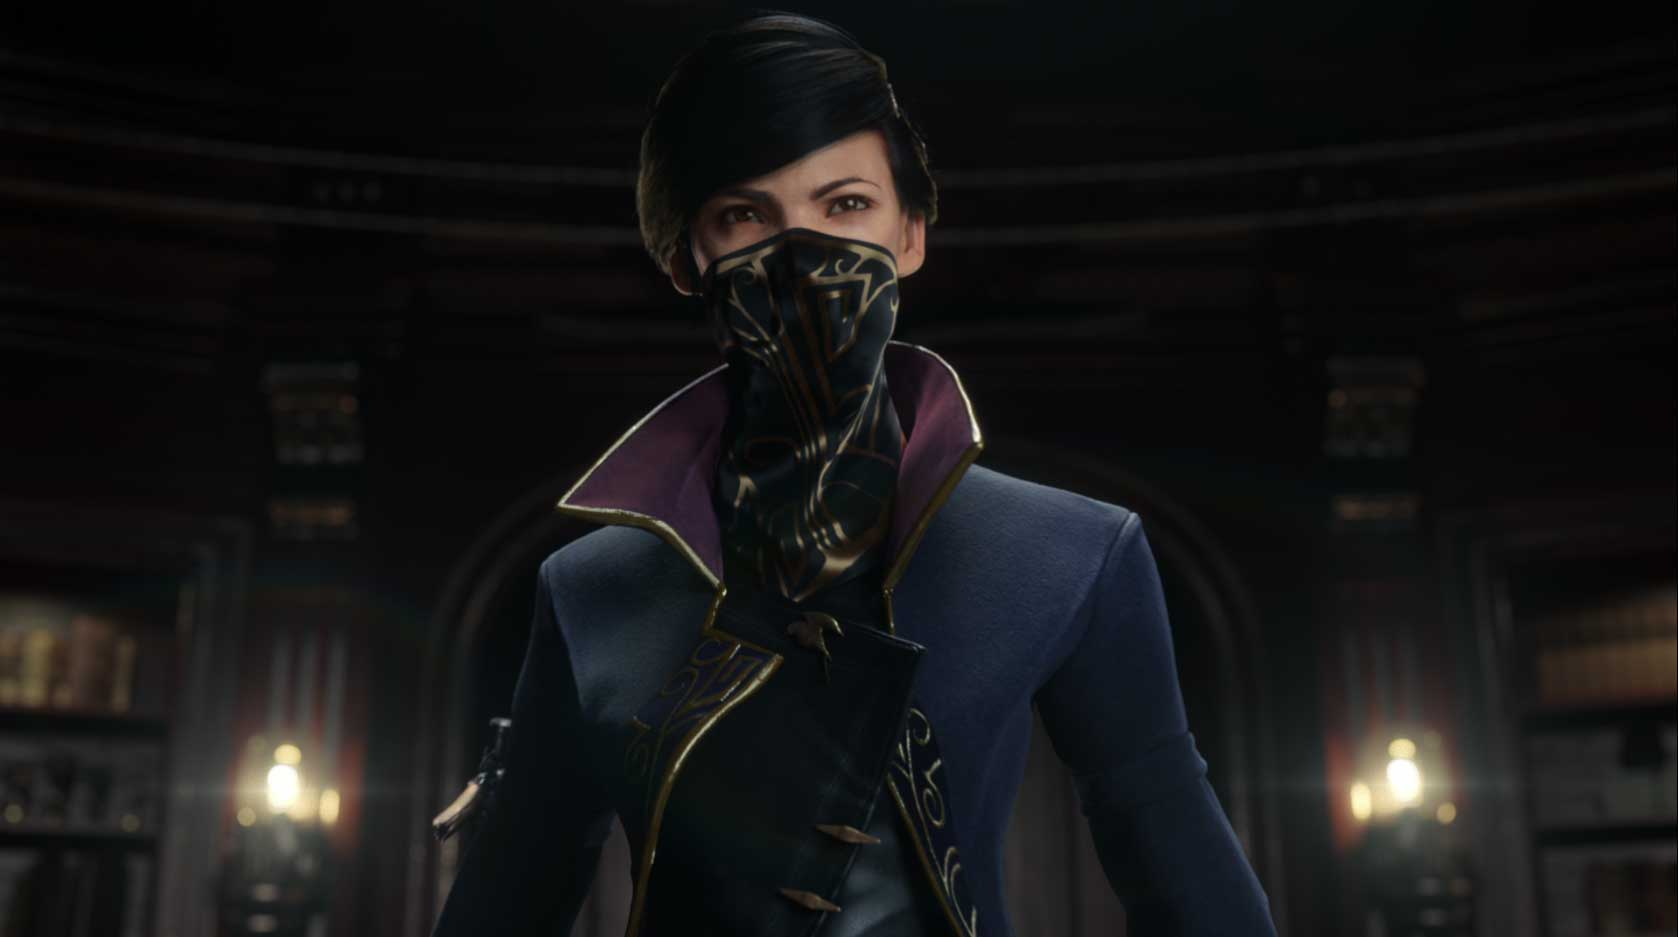 Bethesda Releases Another Dishonored Teaser to Celebrate Early Access